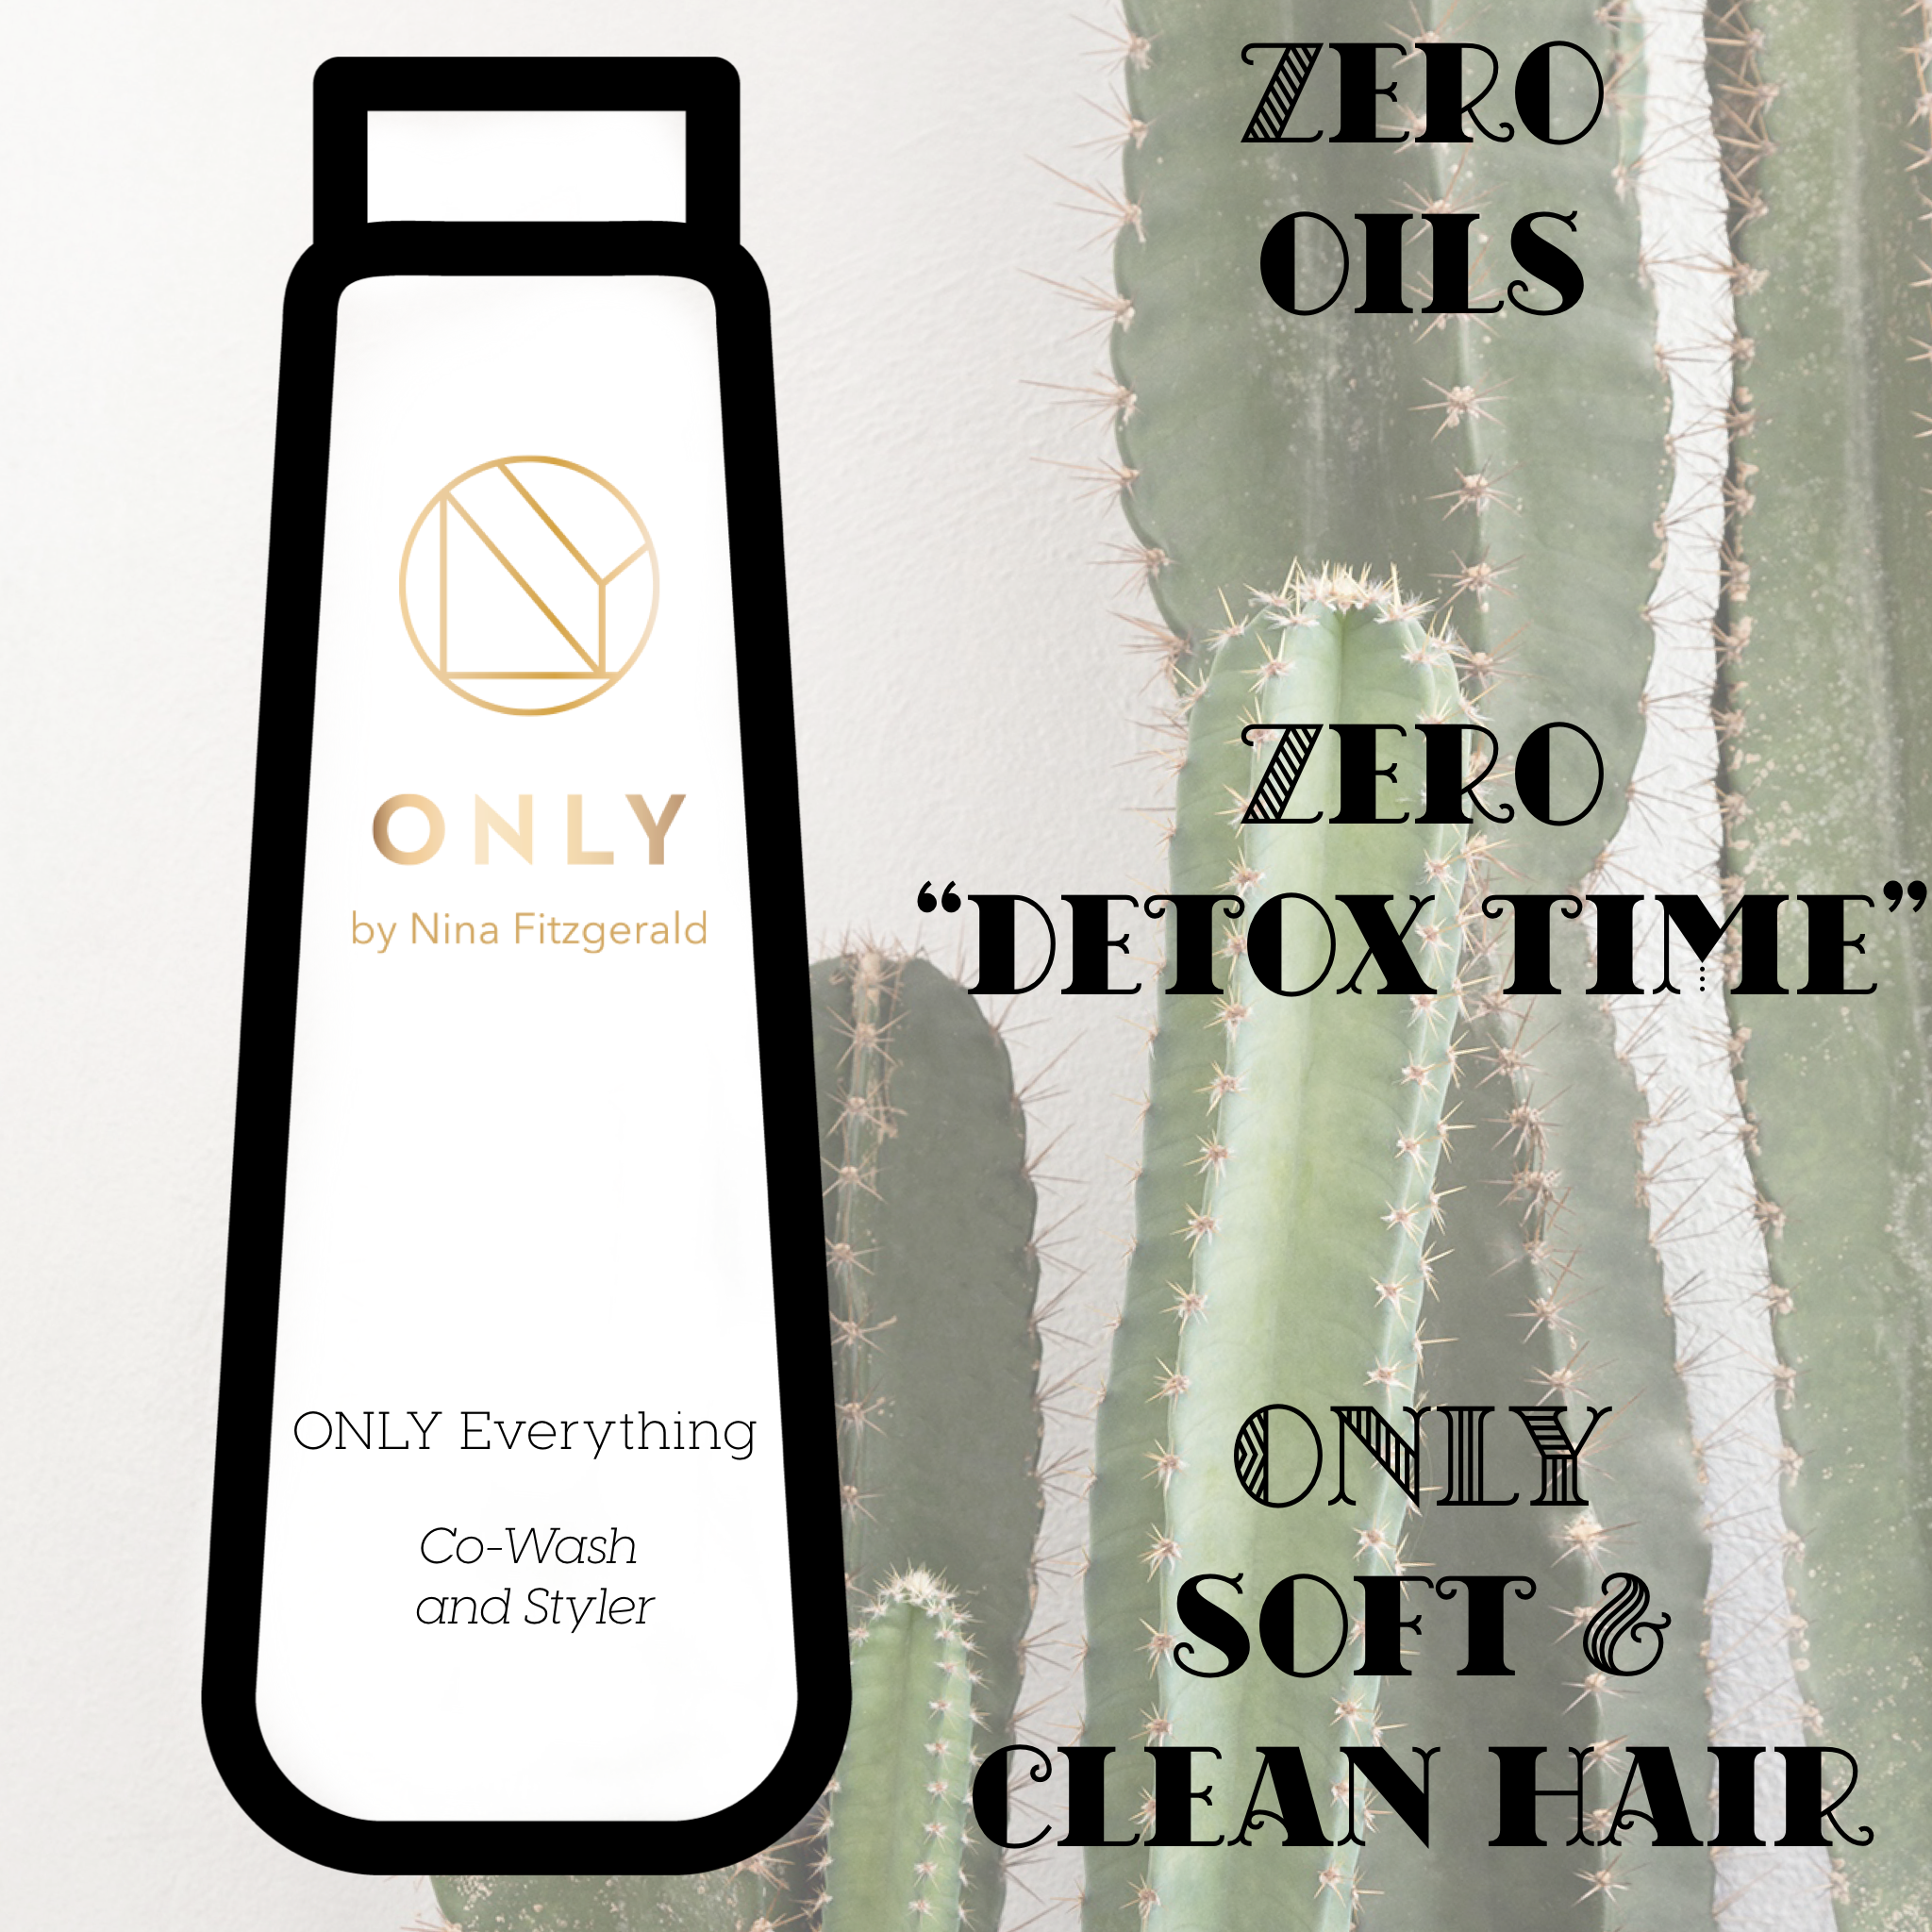 Only Everything Zero Oils, Zero Detox Time, Only Soft and Clean Hair.png